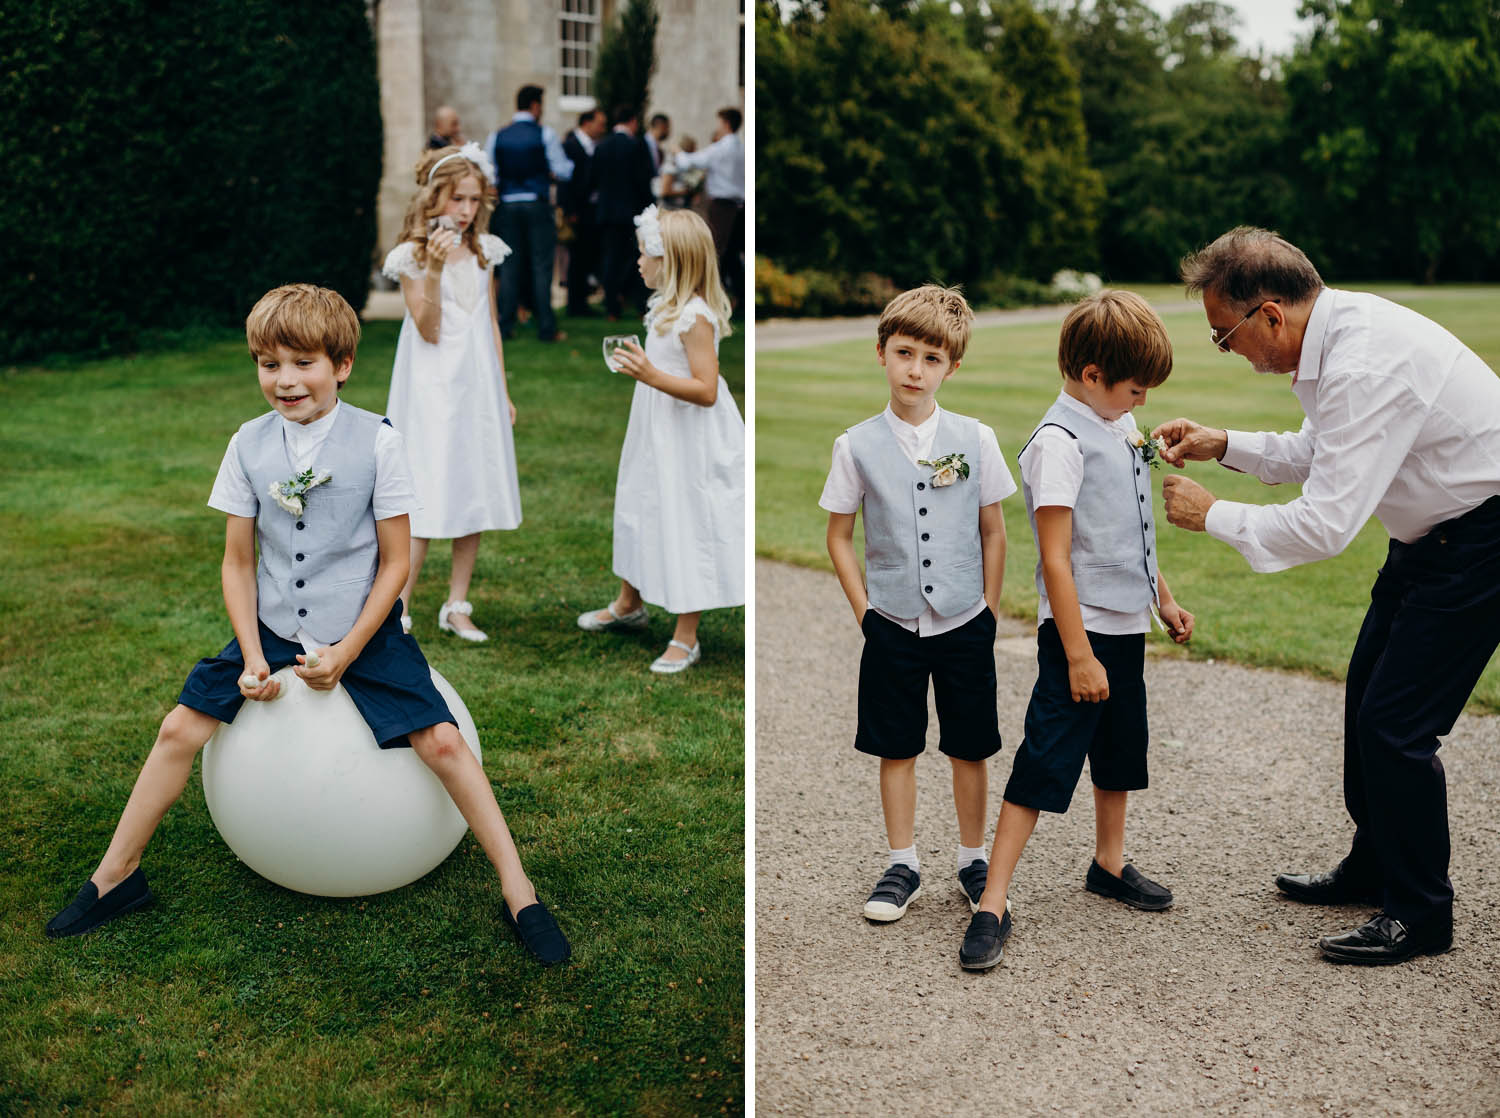 Kids play on space hoppers at wedding